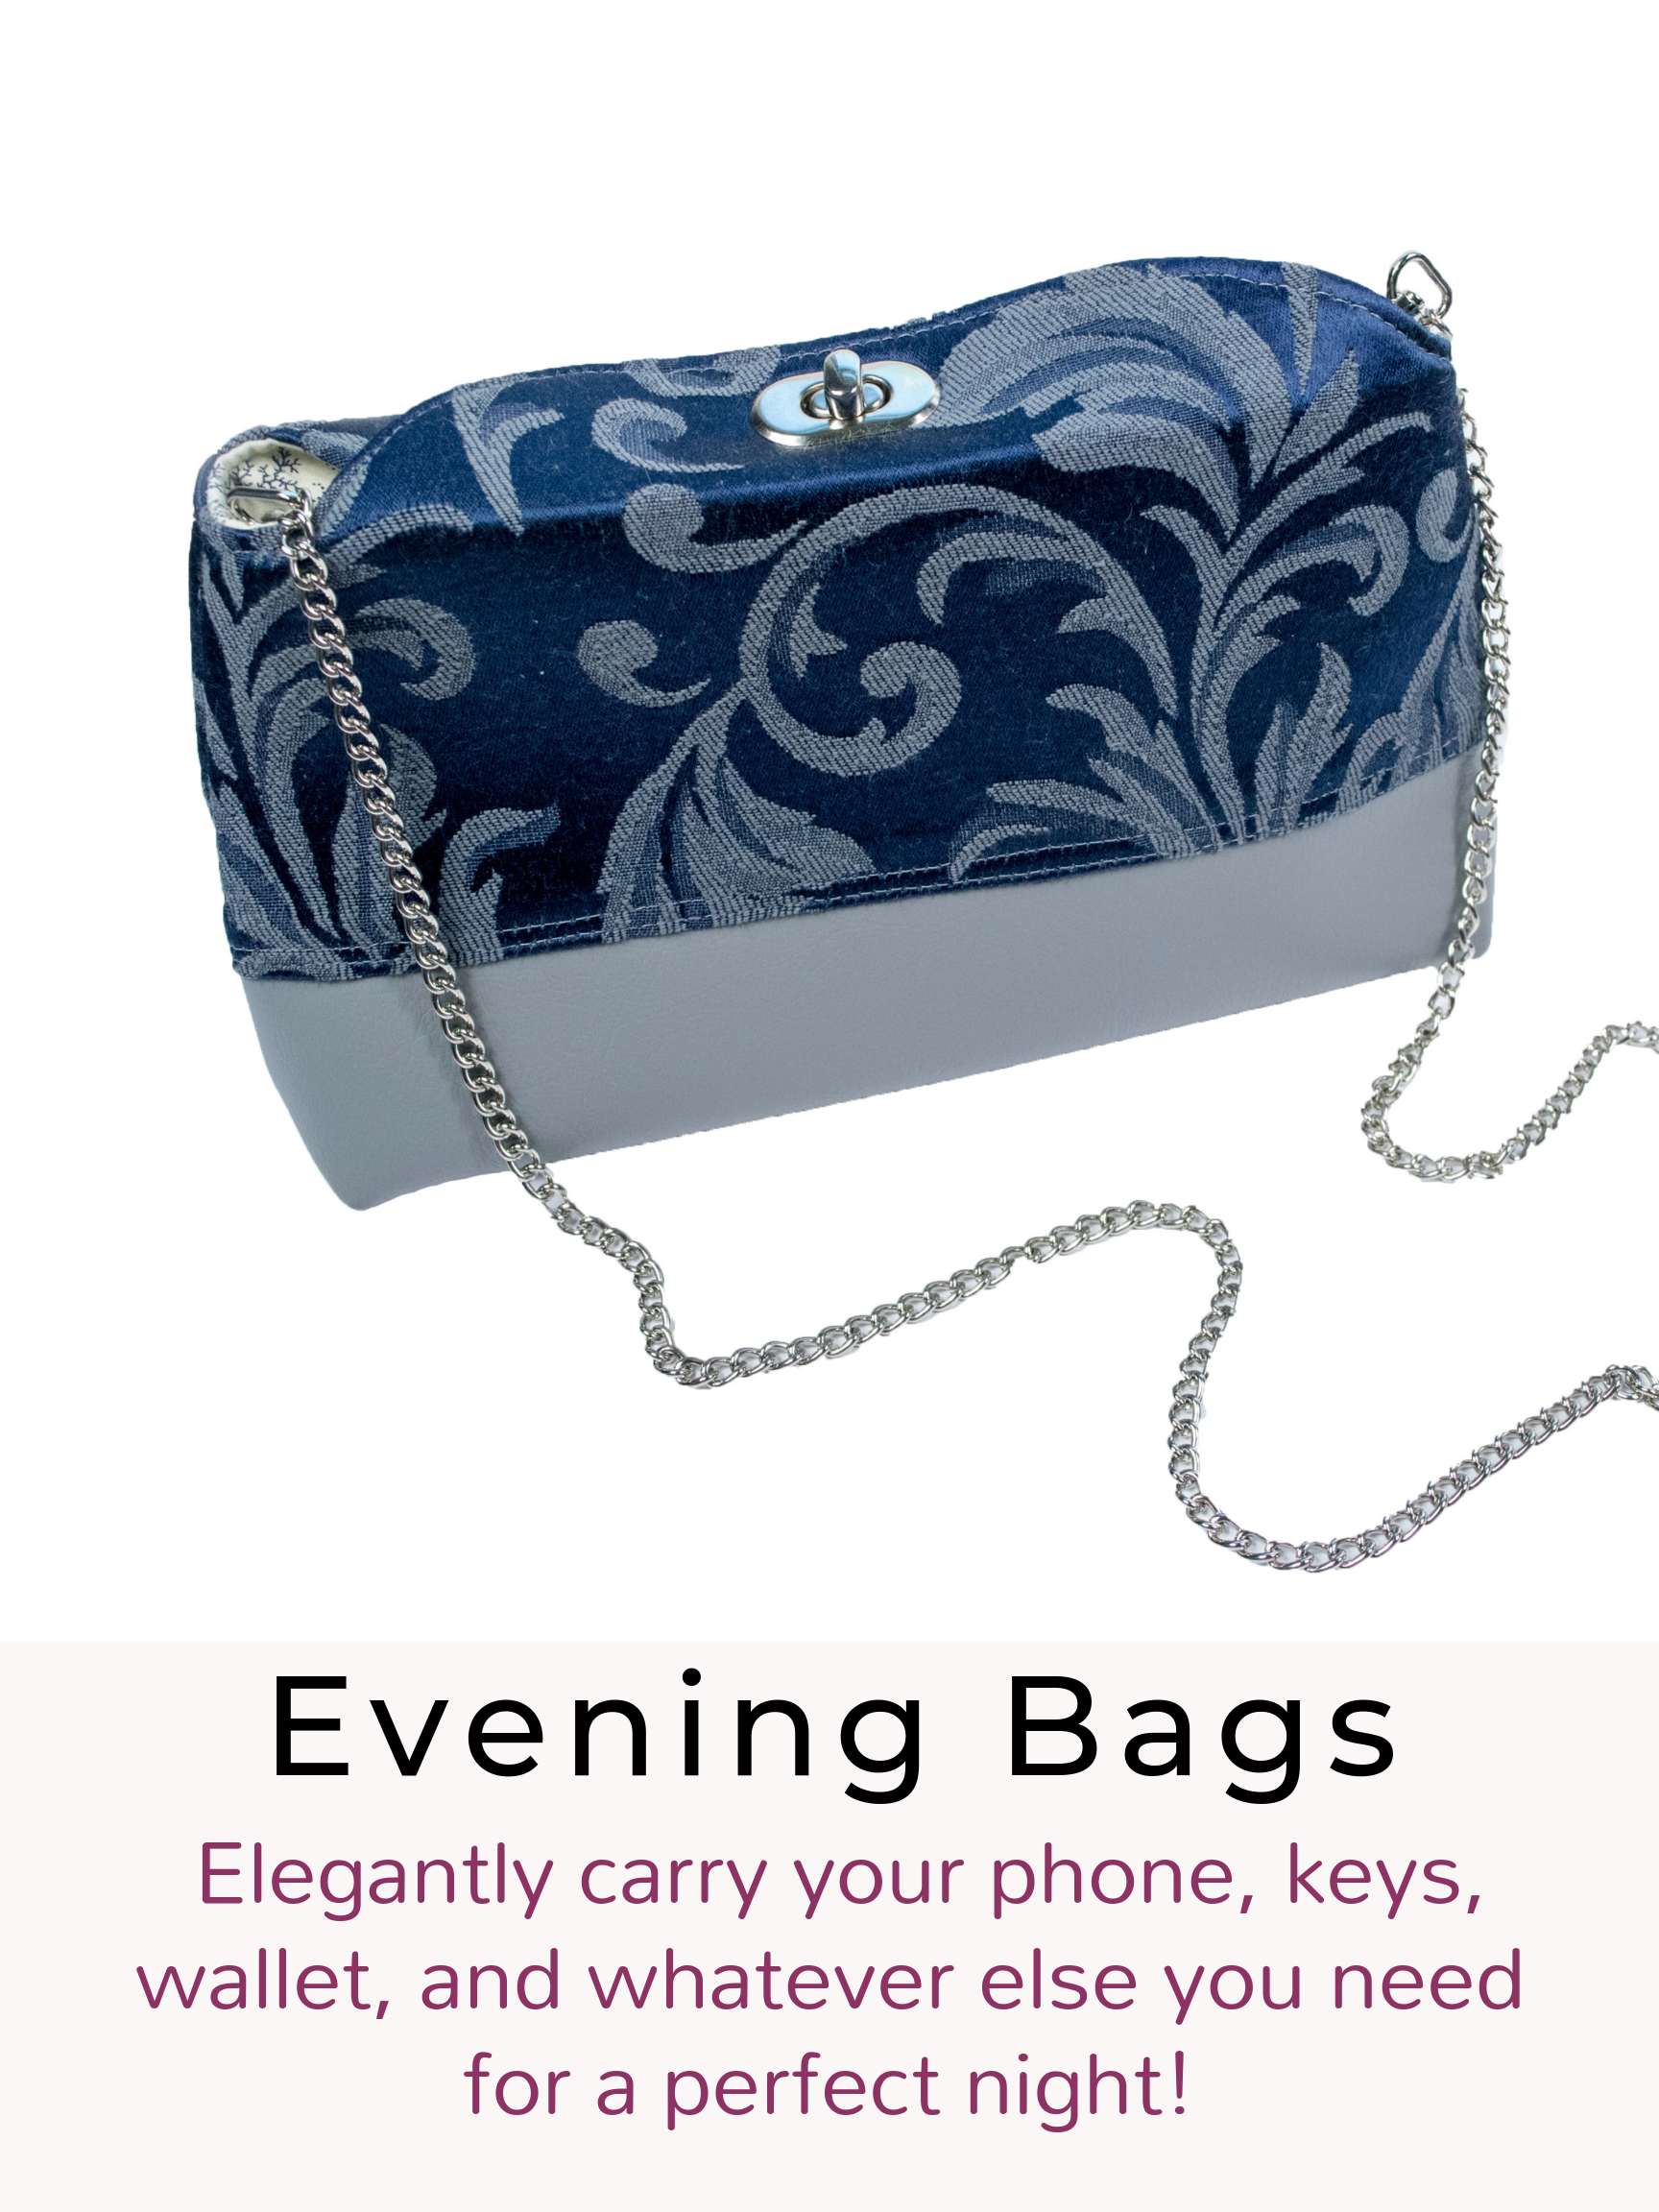 EveningBags.png